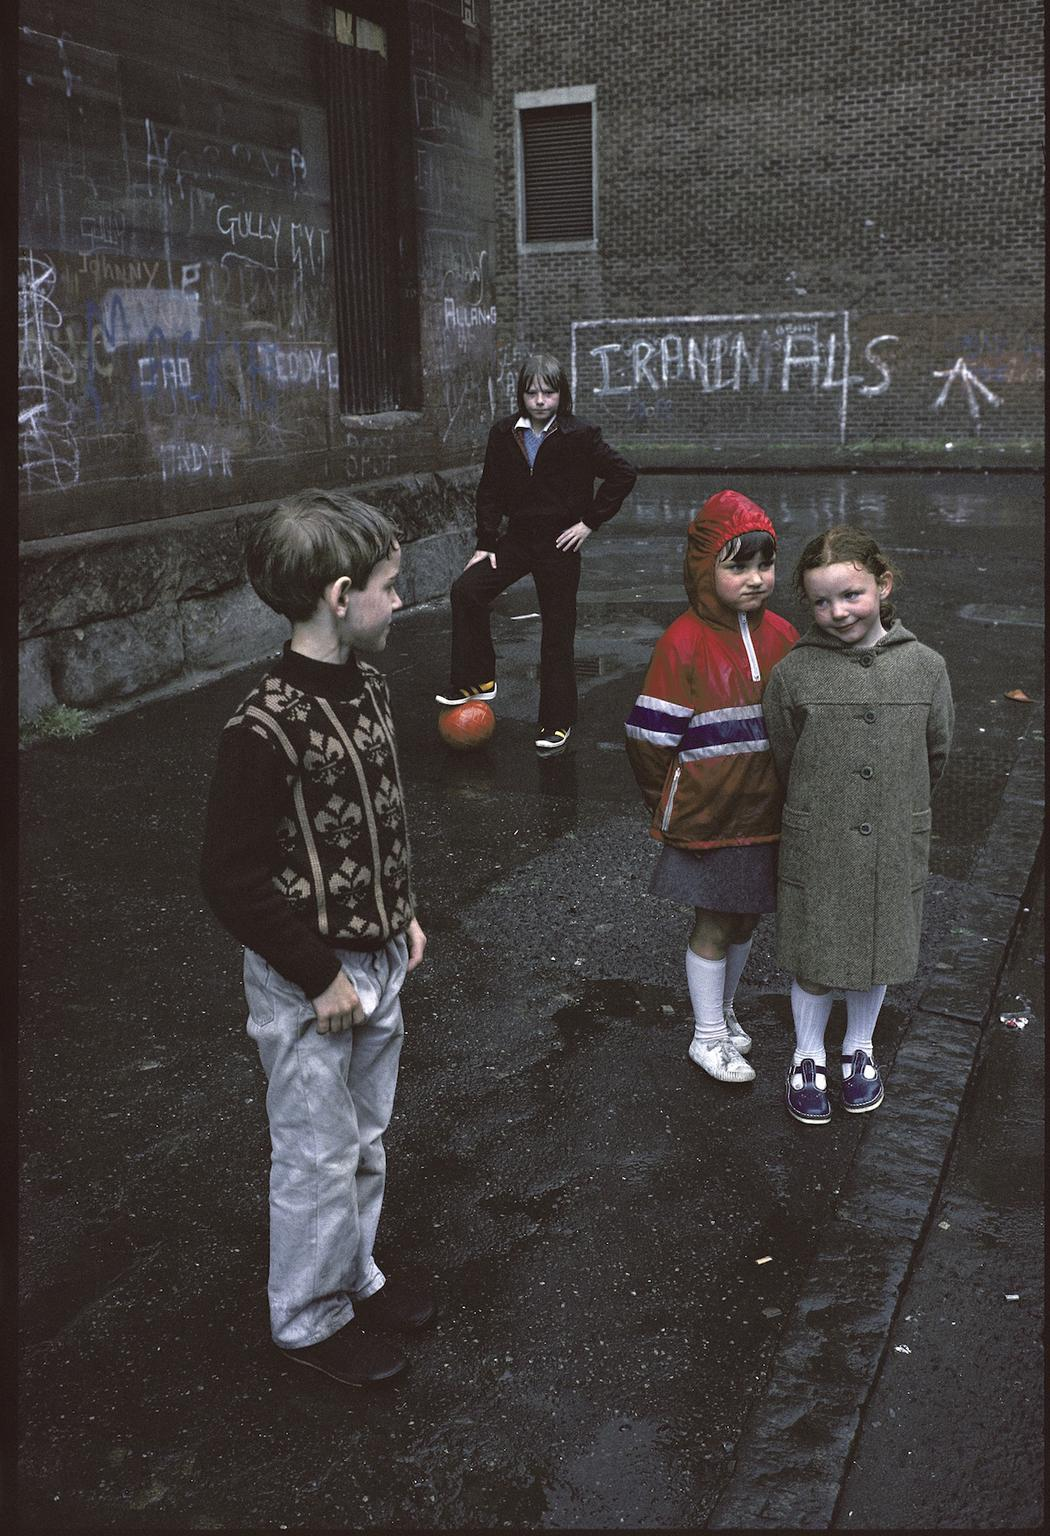 photographs-of-glasgows-slums-in-1980-517-1459529346.jpg